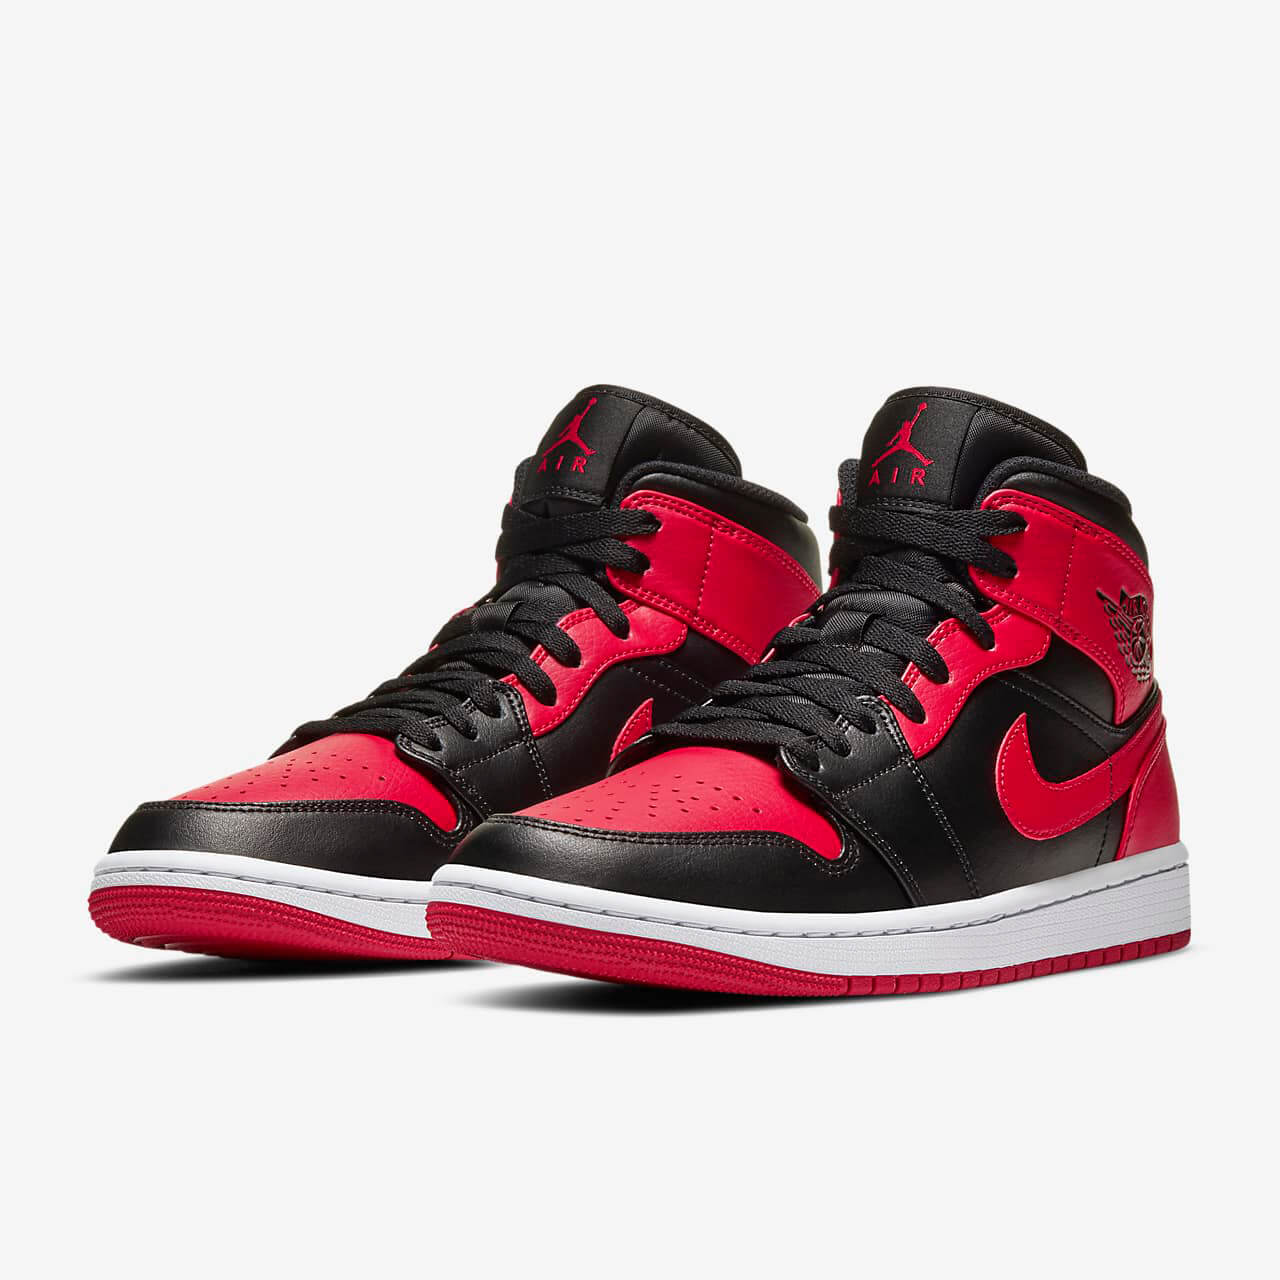 Chaussures Nike Air Jordan 1 Mid Banned France